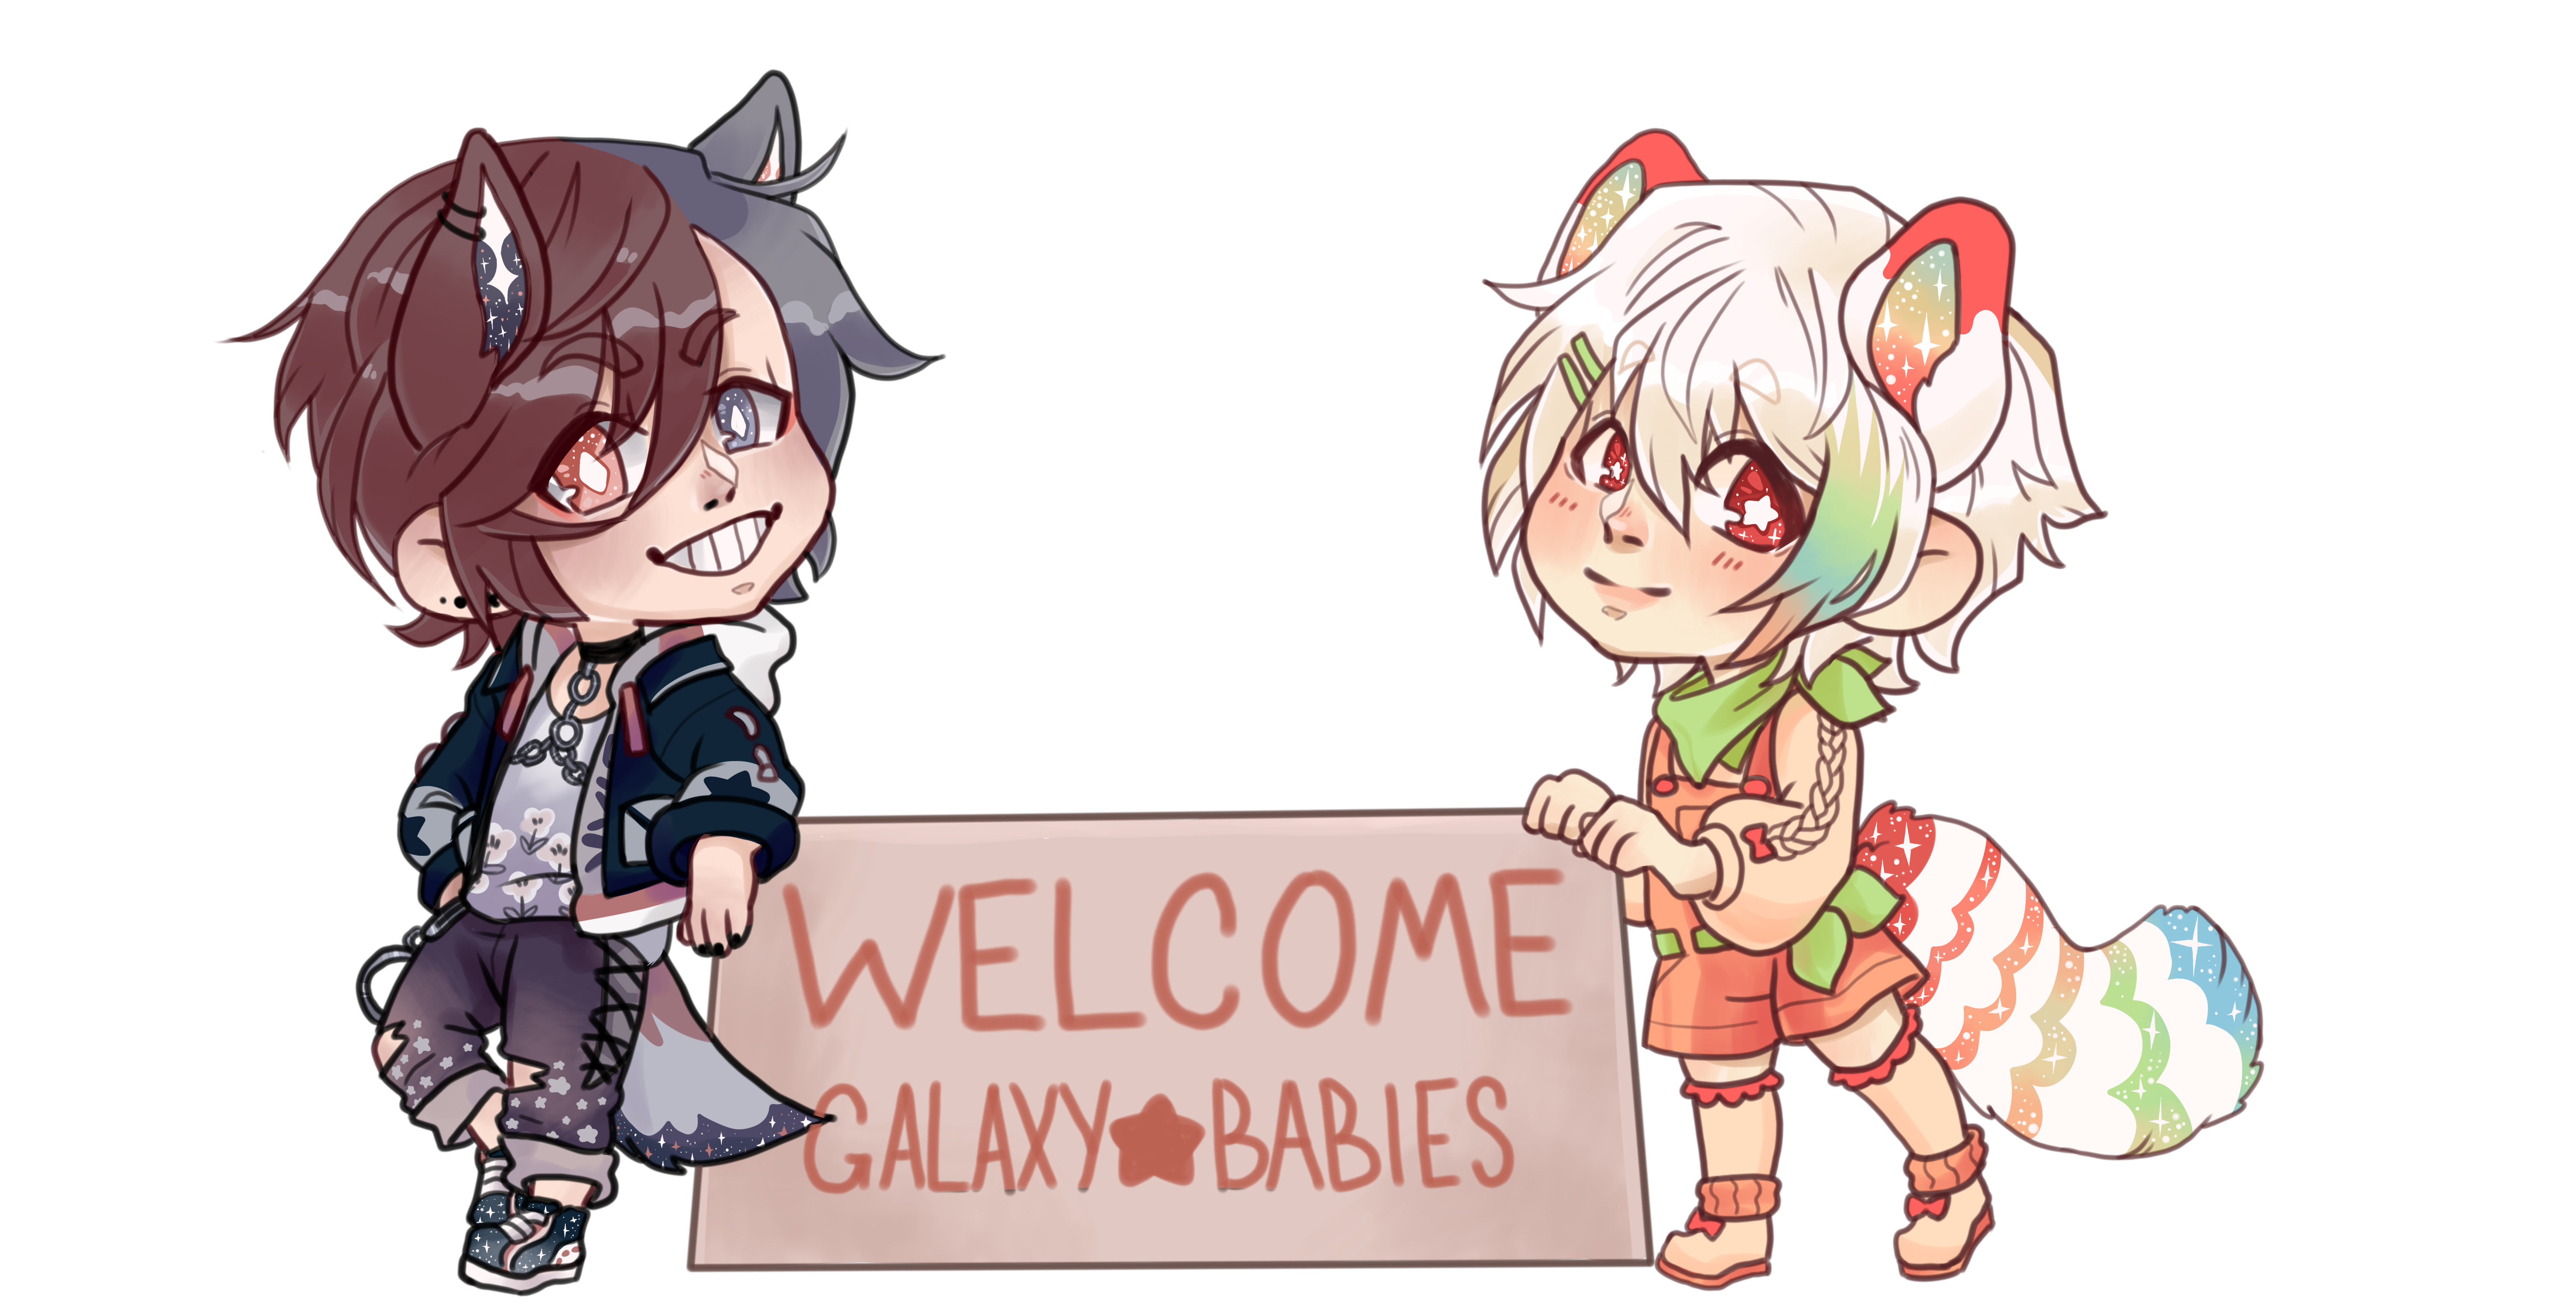 Galaxy_babies_banner.png